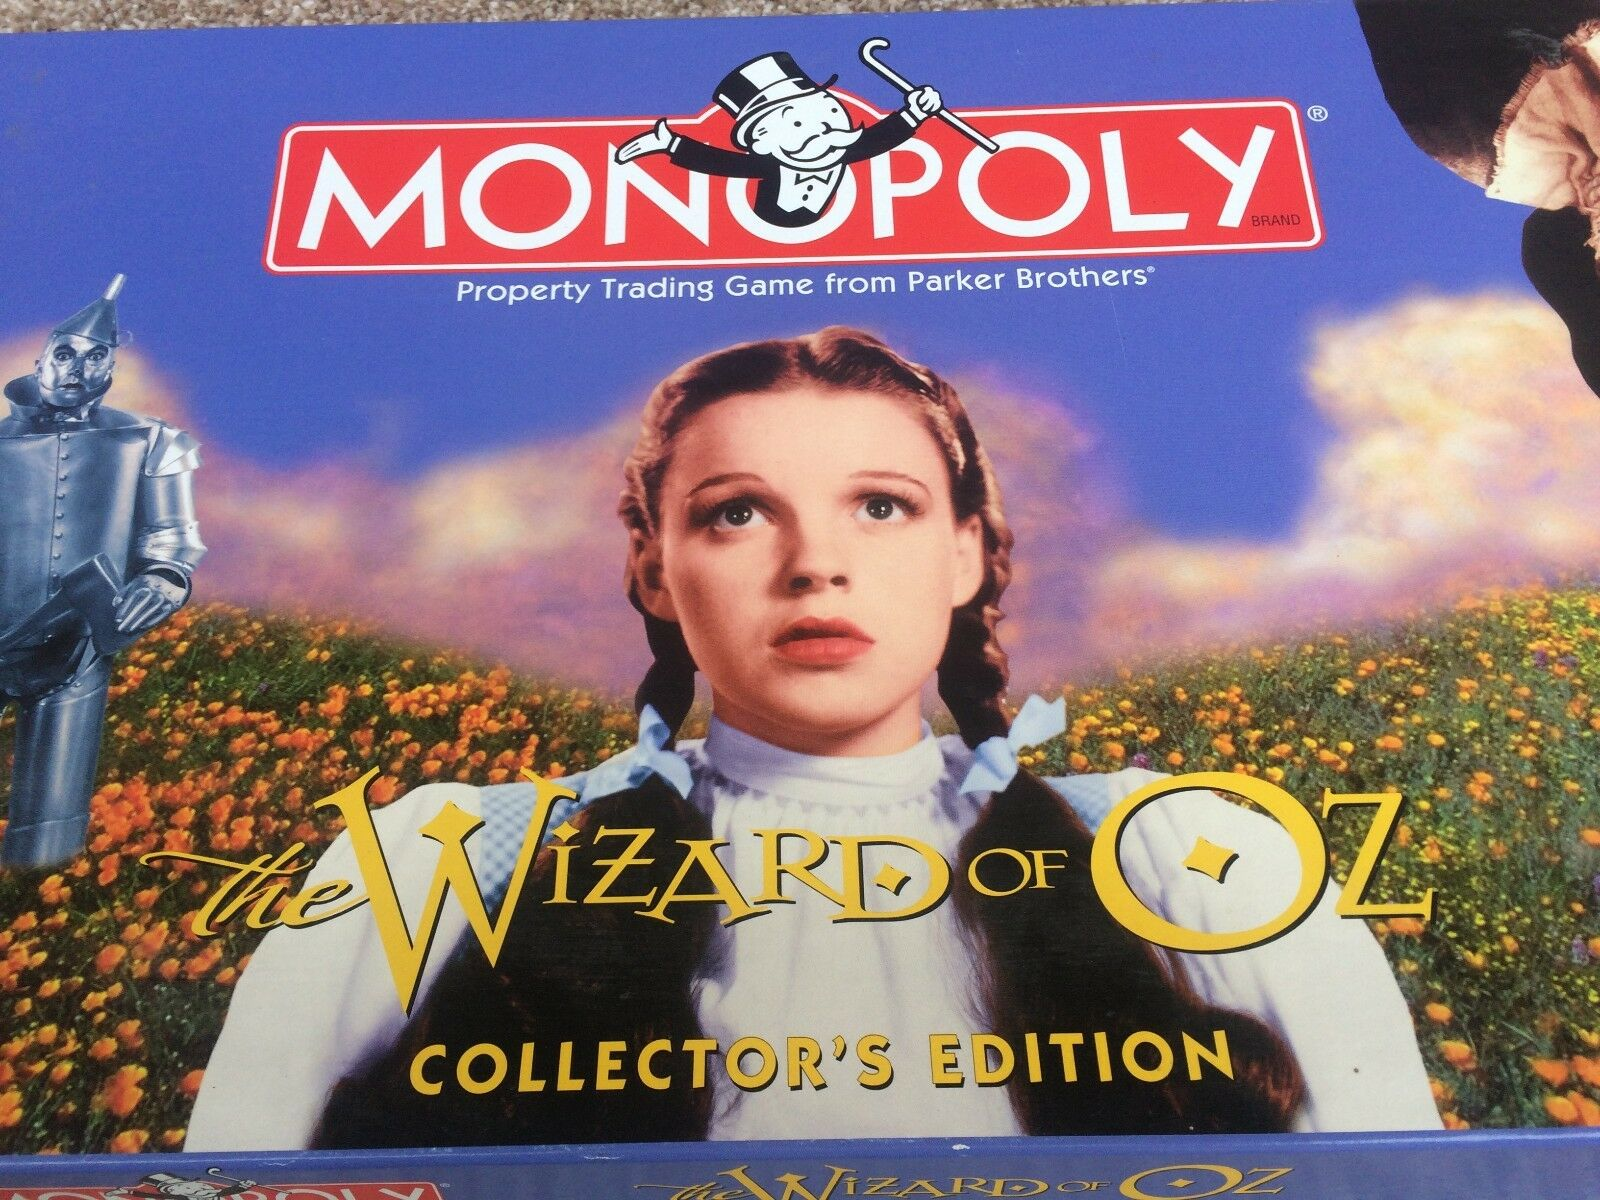 Monopoly wizard of oz collectors edition new great fun game pieces